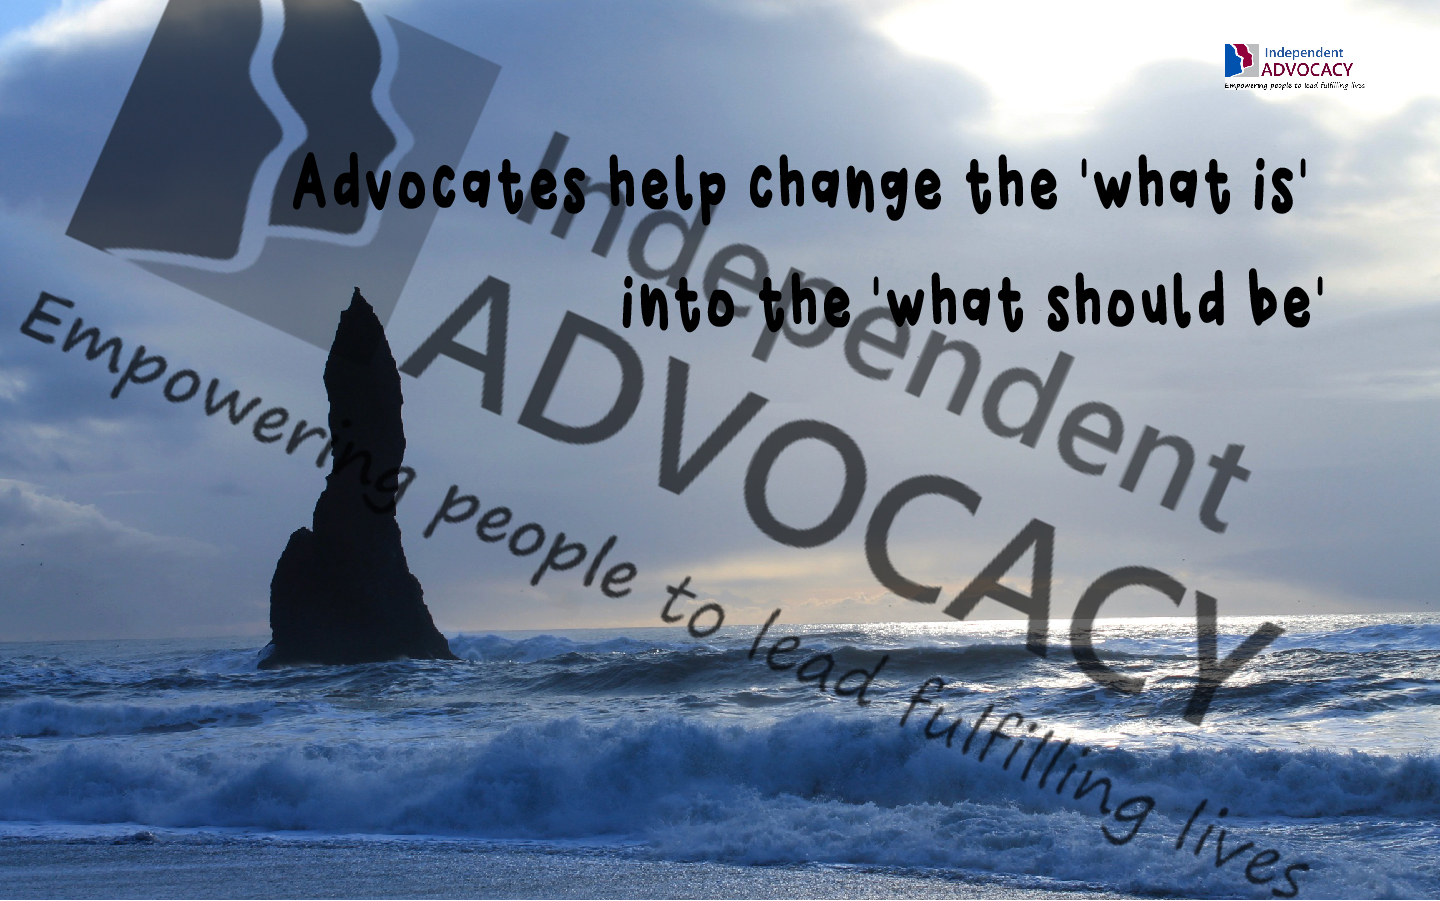 Advocacy wallpaper - Advocates you turn what is into what should be